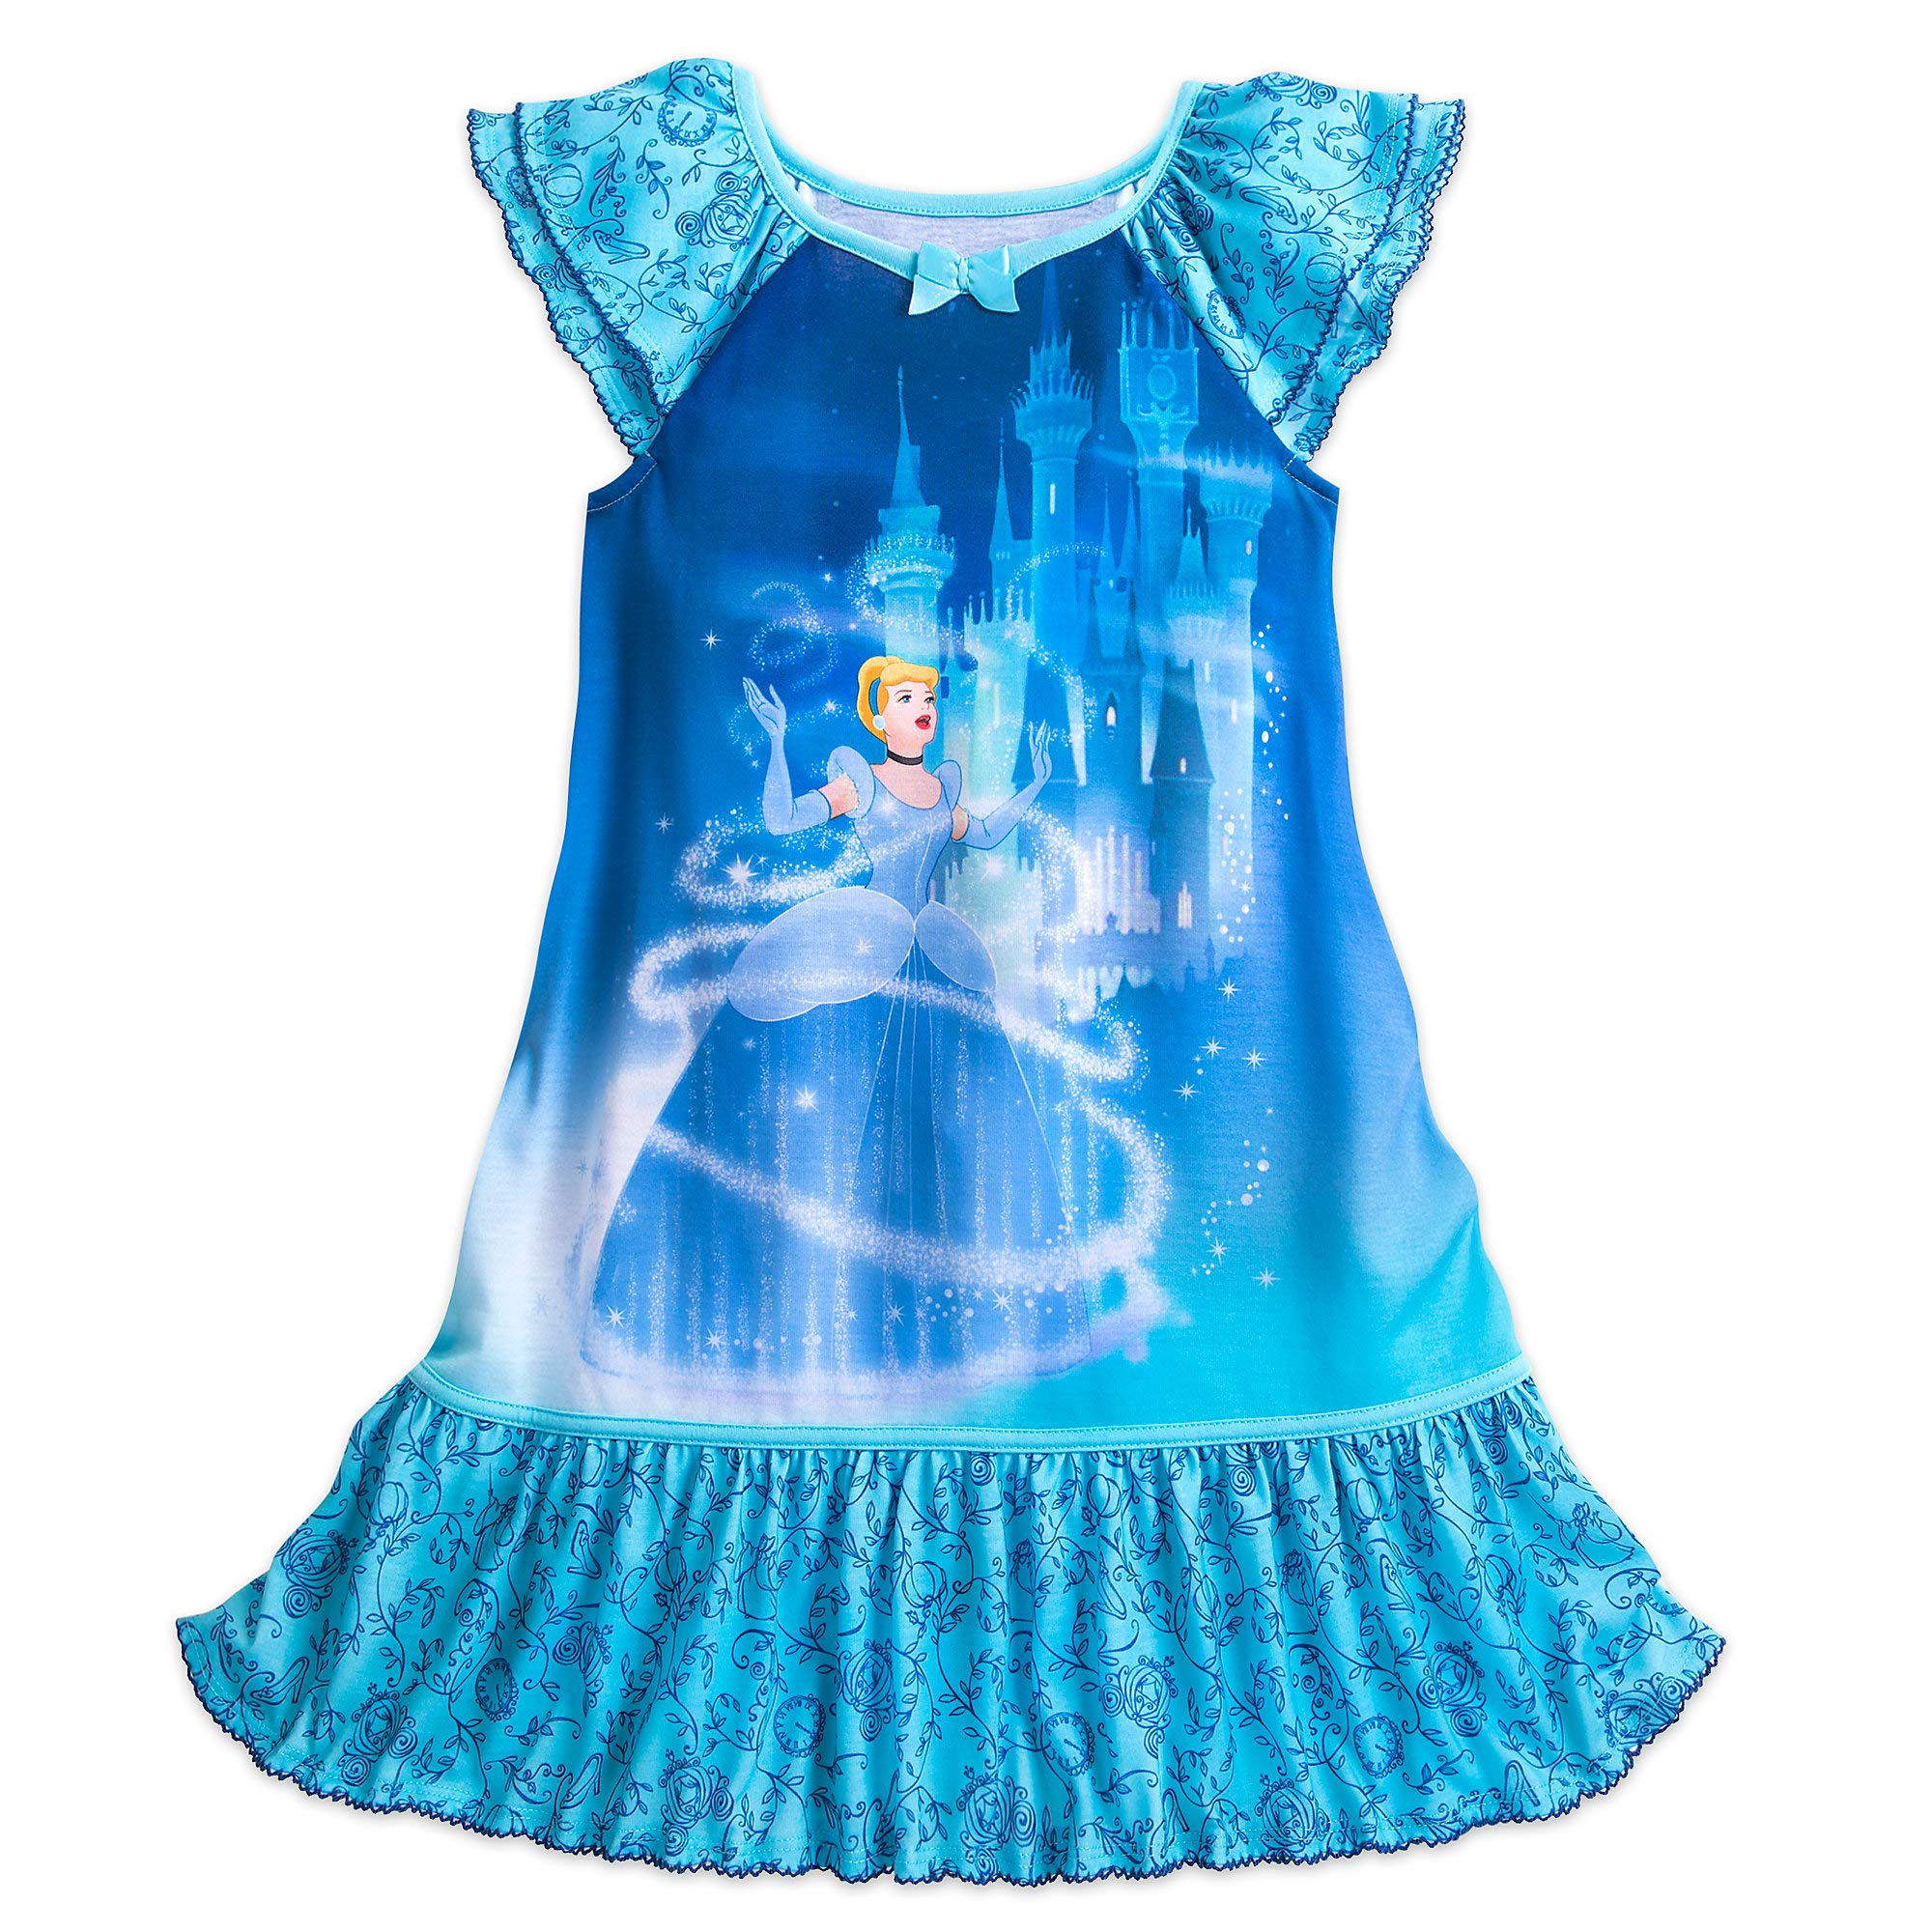 Disney Cinderella Nightshirt for Girls Size 9/10 Multi by Disney (Image #1)